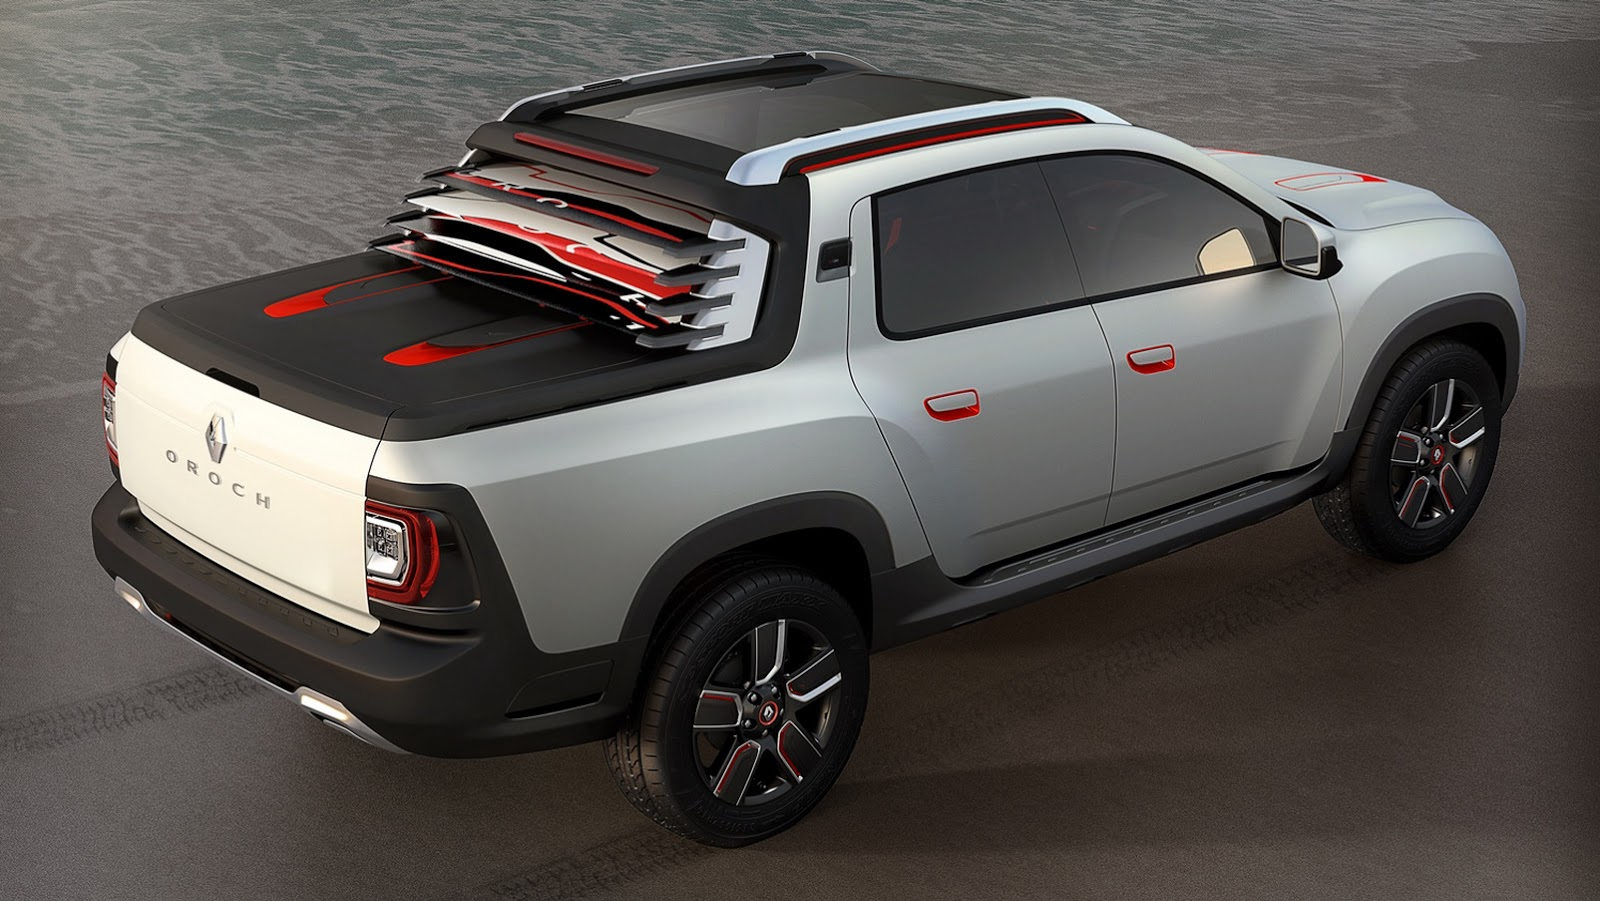 renault turns duster into oroch pickup truck concept for brazil. Black Bedroom Furniture Sets. Home Design Ideas